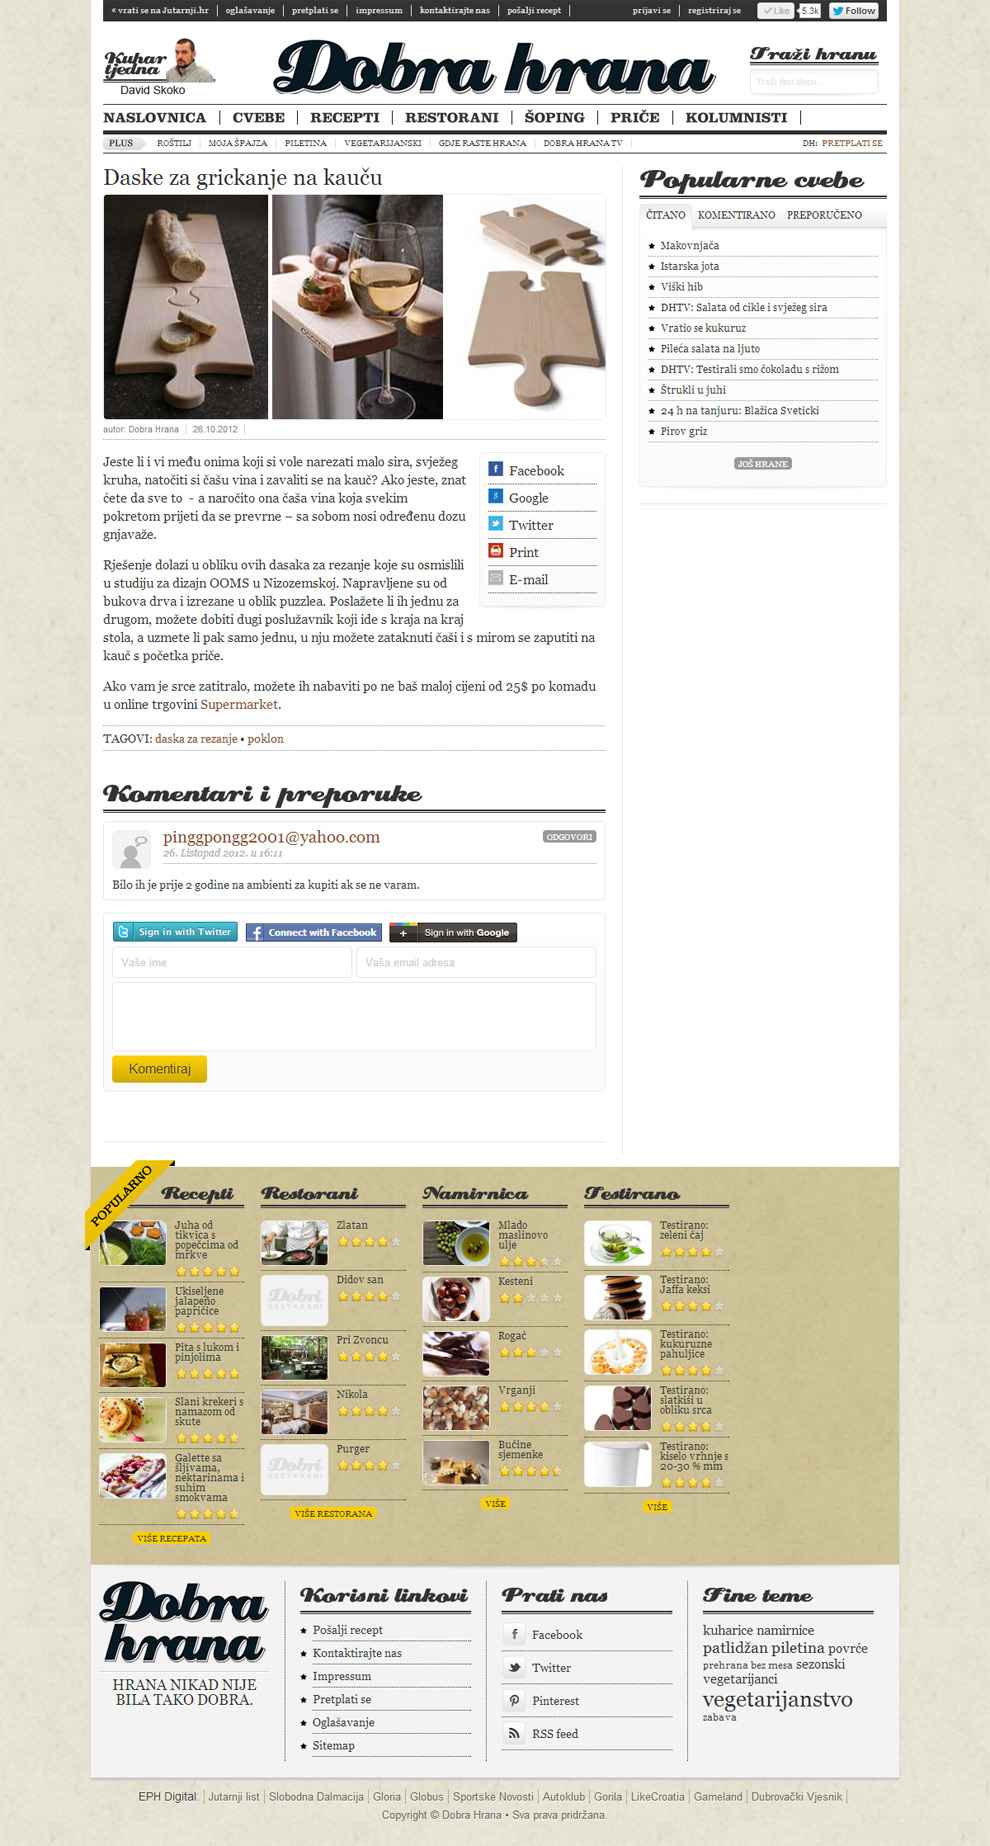 Signle page